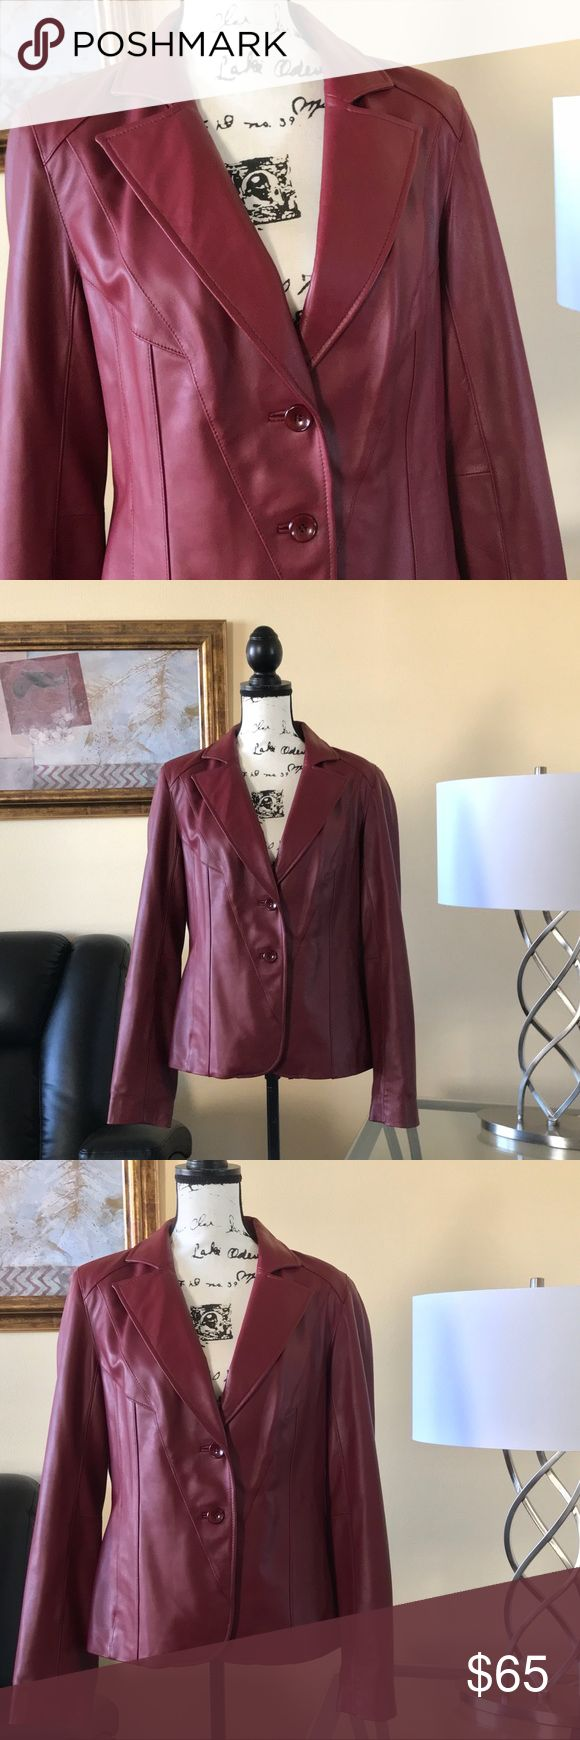 "🧥EUC✨WORTHINGTON Genuine Lambskin Leather Jacket 🧥EUC✨WORTHINGTON Genuine Lambskin Leather Jacket. Size: Medium. Color: Burgandy. Condition: In EXCELLENT used condition, with VERY little signs of wear, yay❣️Approximately 19.75""W x 24""L. WORTHINGTON Jackets & Coats Blazers"